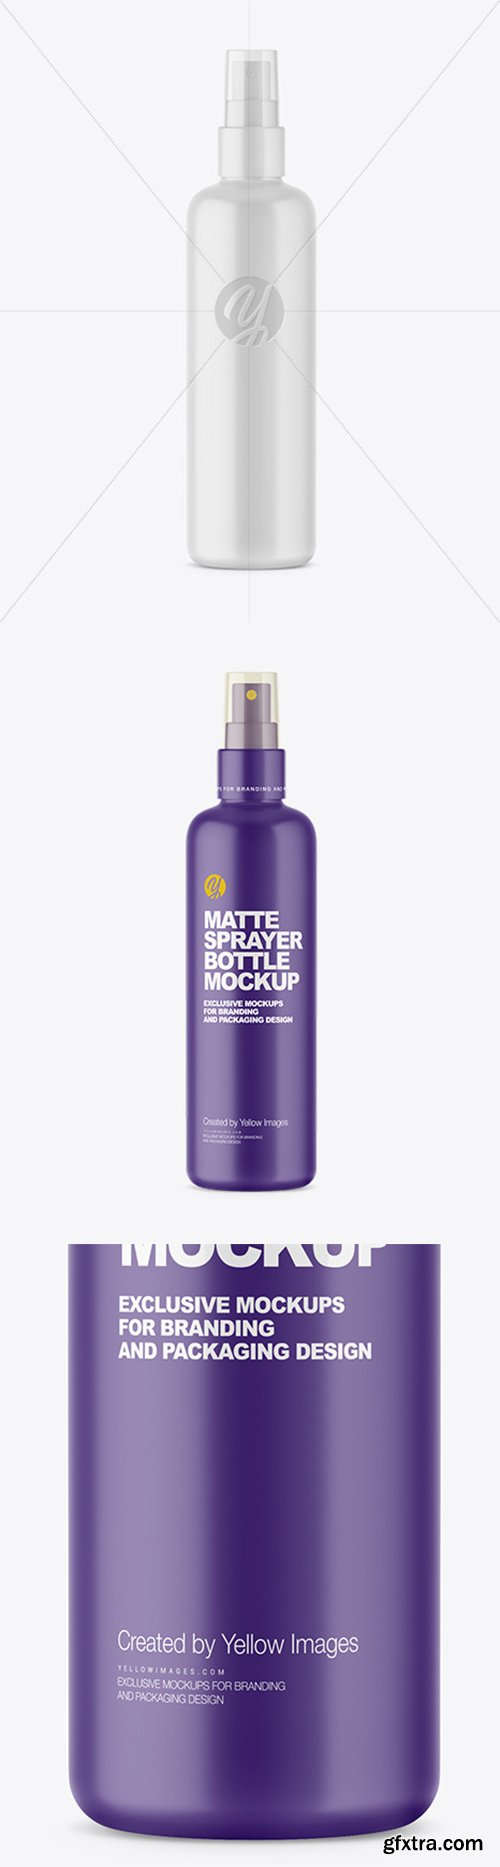 Matte Cosmetic Sprayer Bottle Mockup 55354